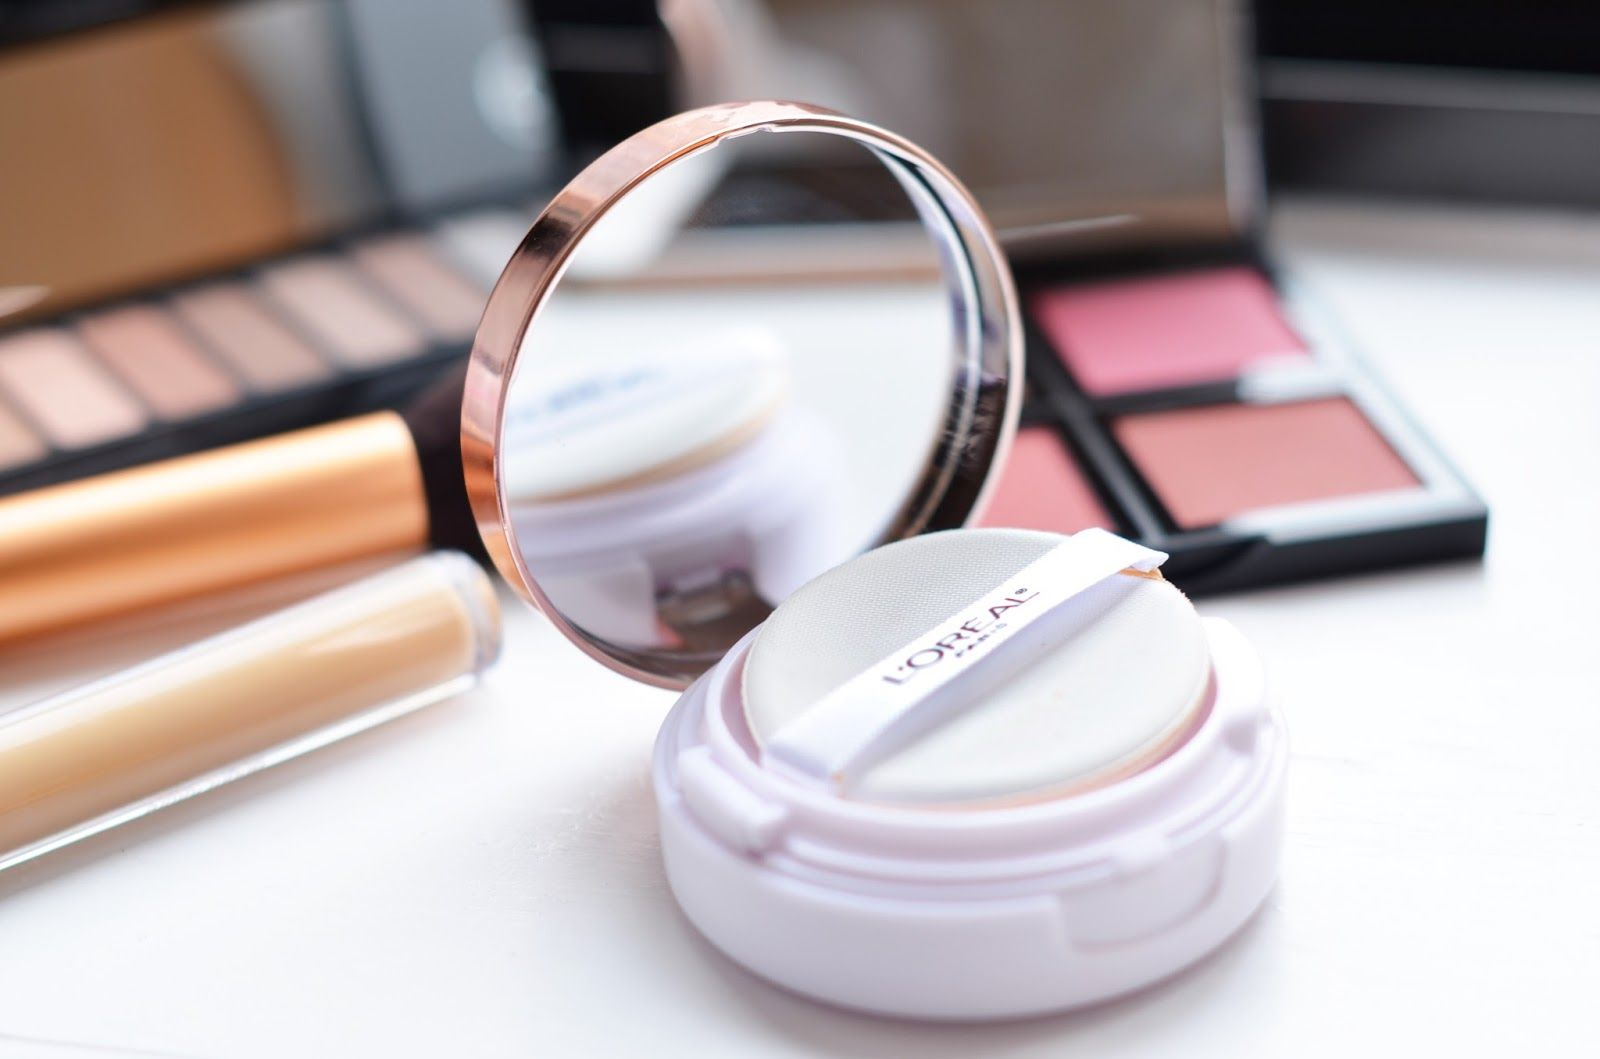 Reseña Base L'oreal True Match Lumi Cushion